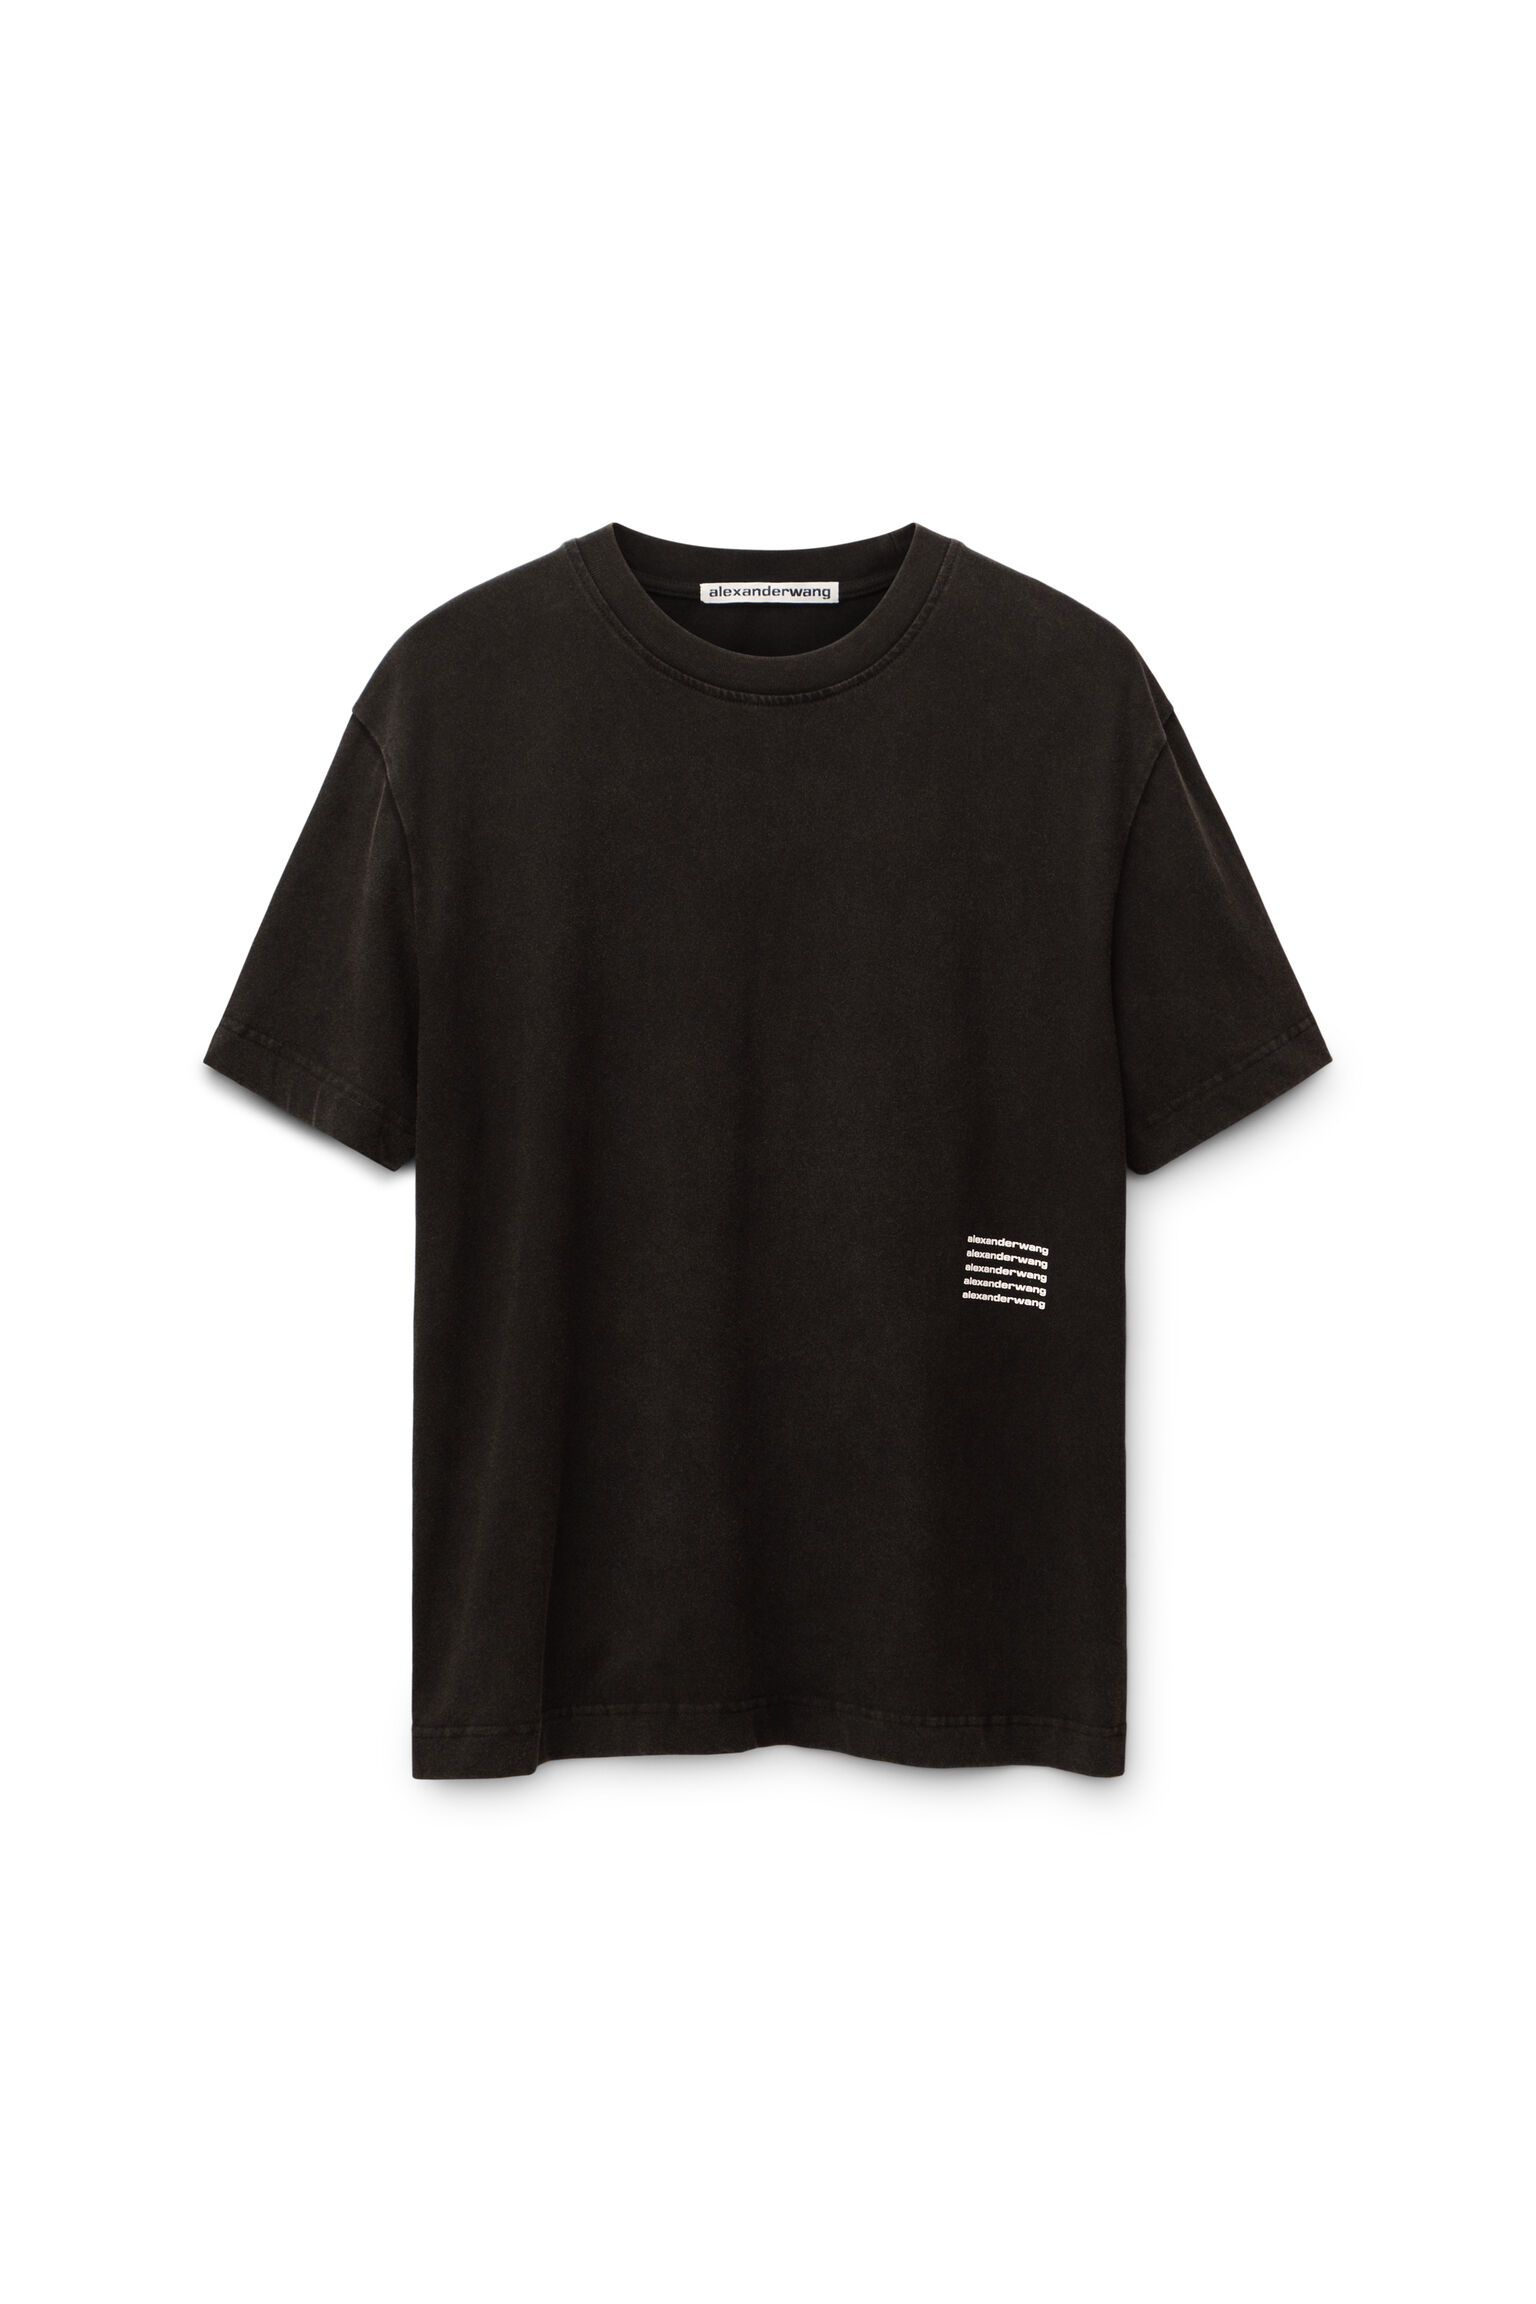 Alexanderwang High Twist Acid Wash T Shirt